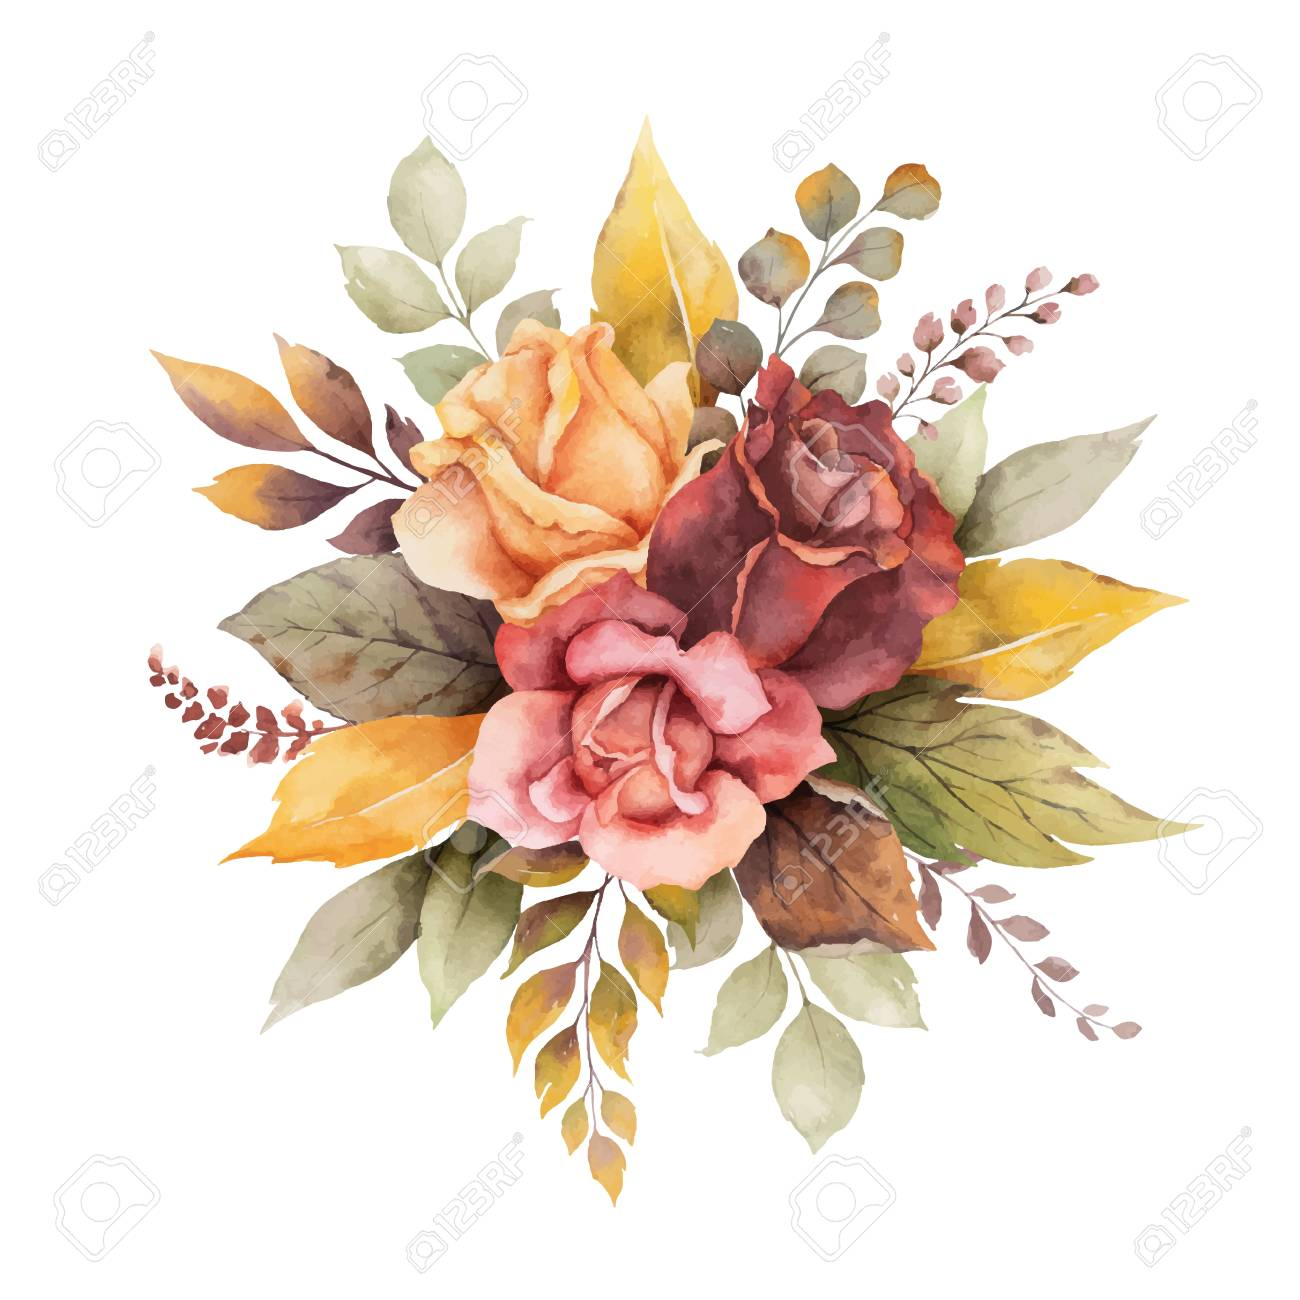 Watercolor vector autumn arrangement with roses and leaves isolated on white background. Botanic composition for greeting cards, wedding invitations, floral poster and decorations. - 130047533